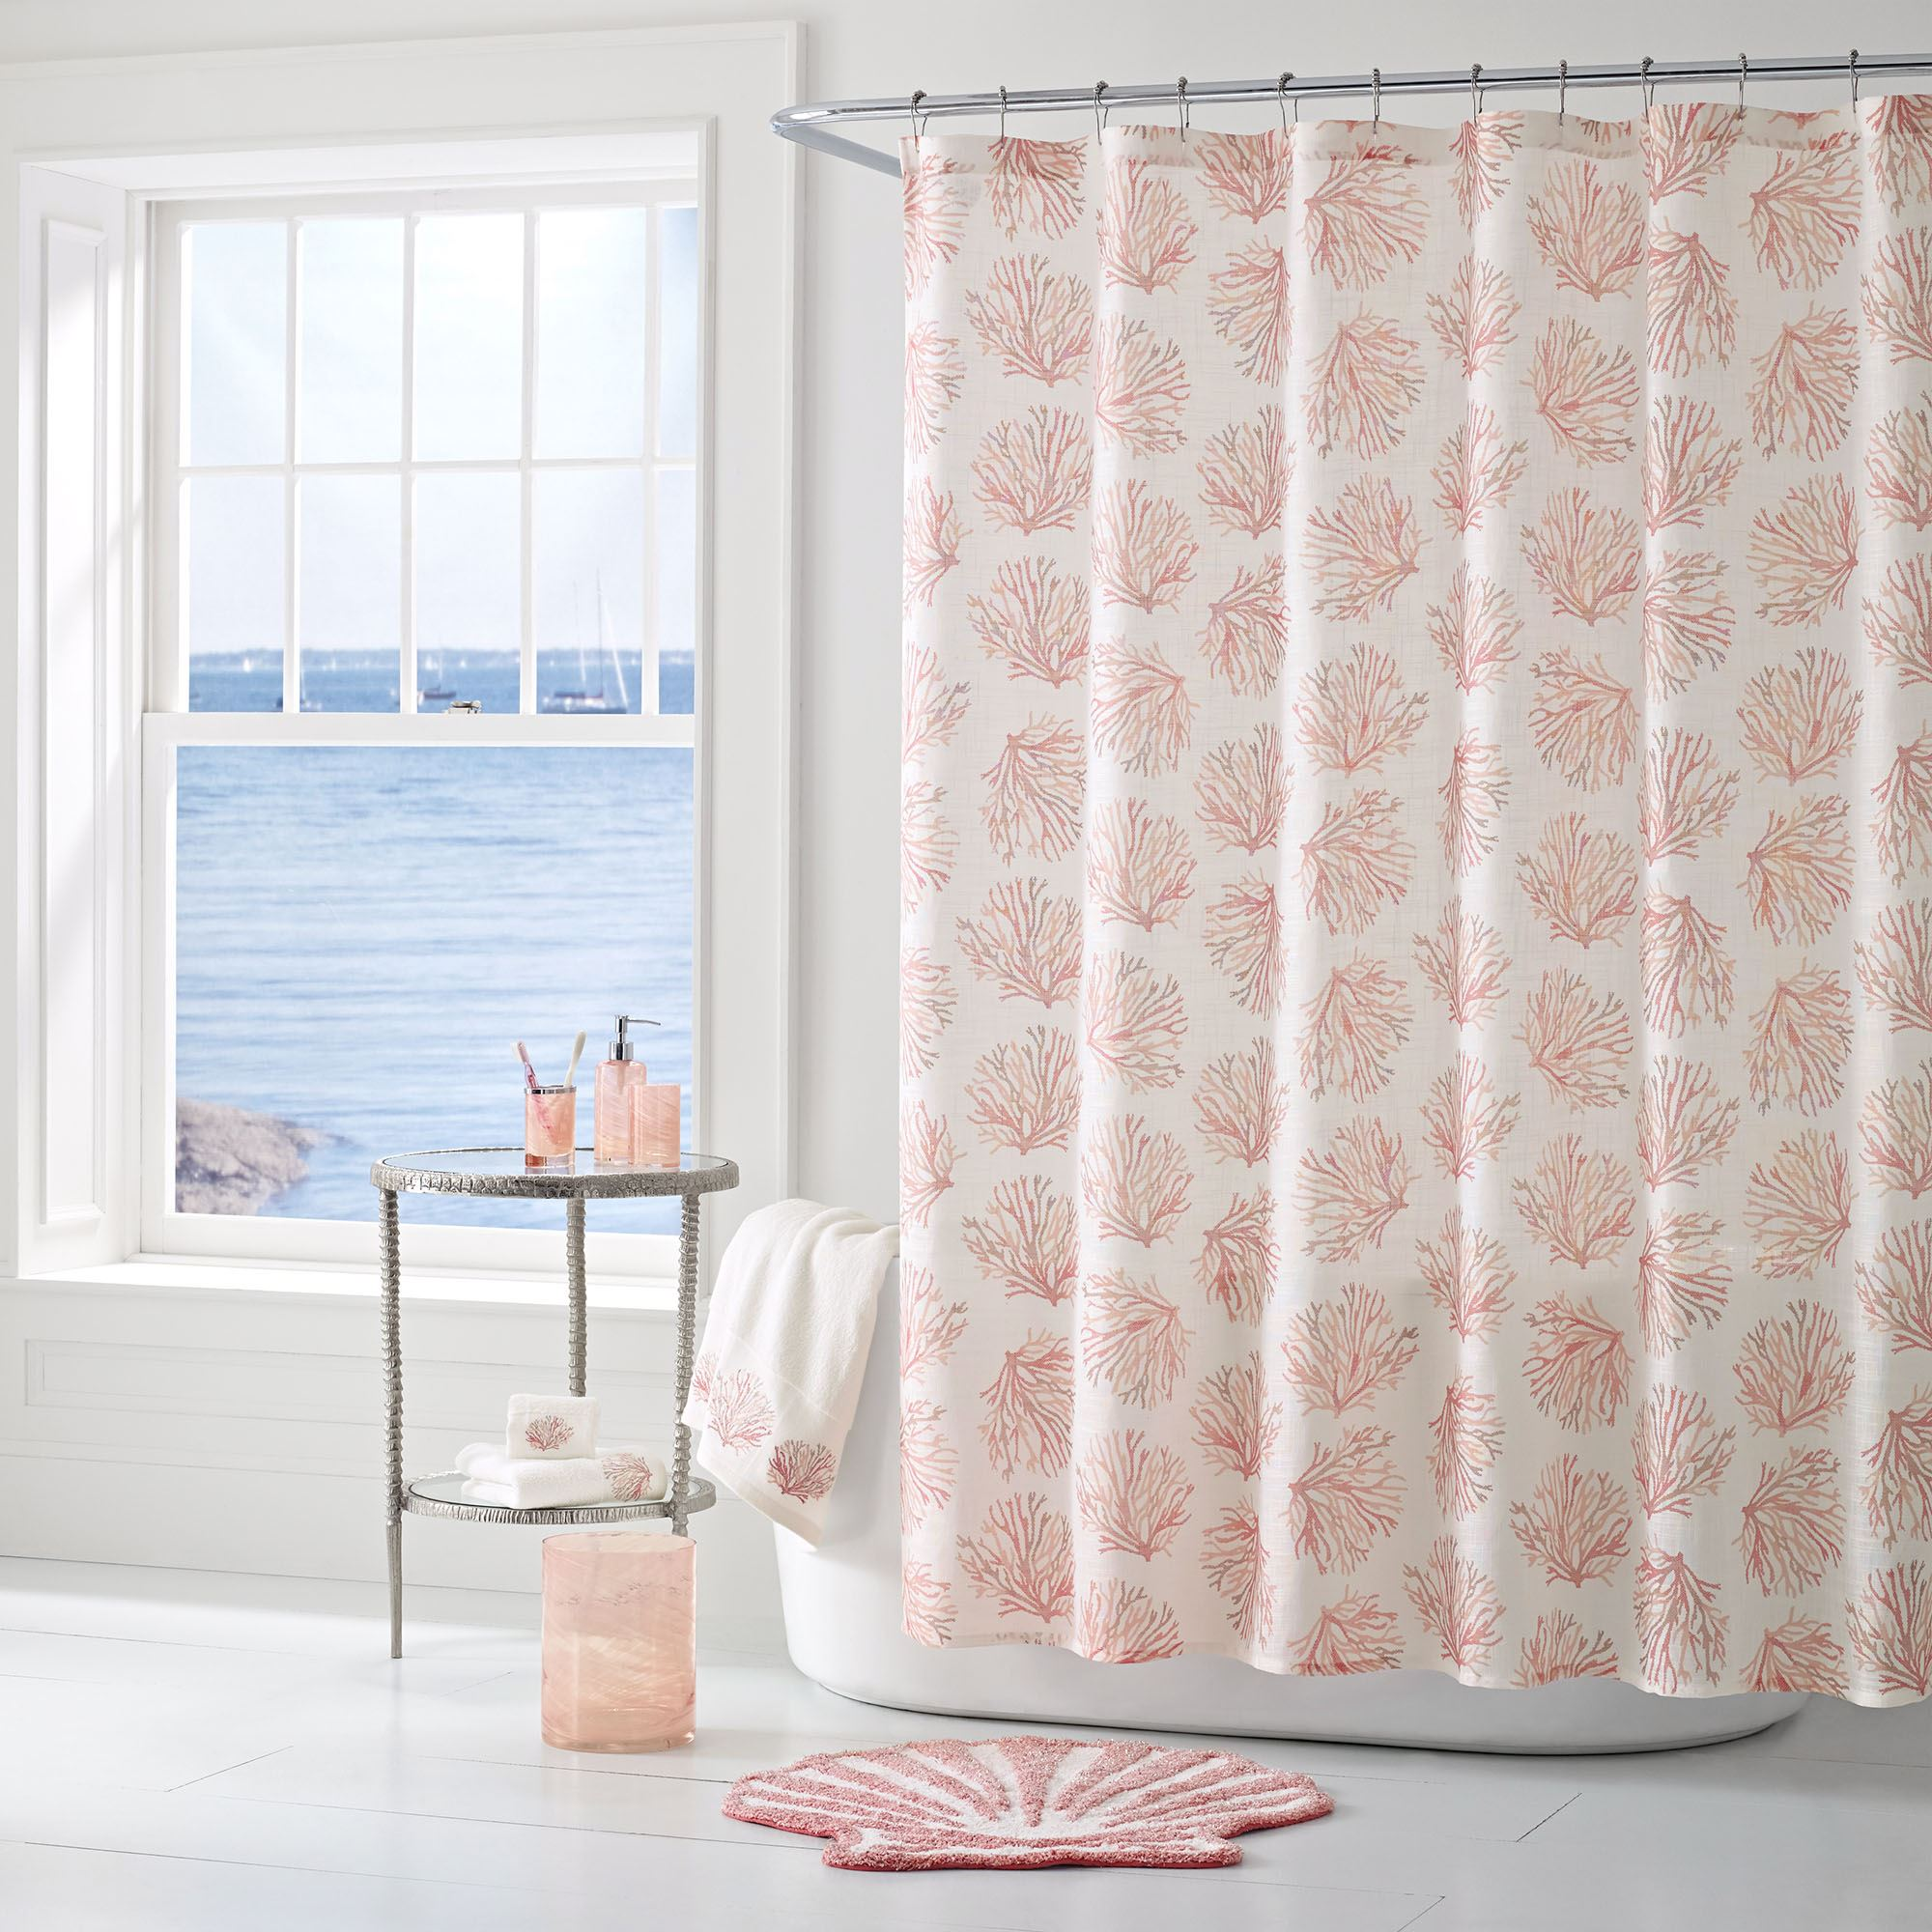 Coral Reef Semi Sheer Coastal Shower Curtain By J Queen New York